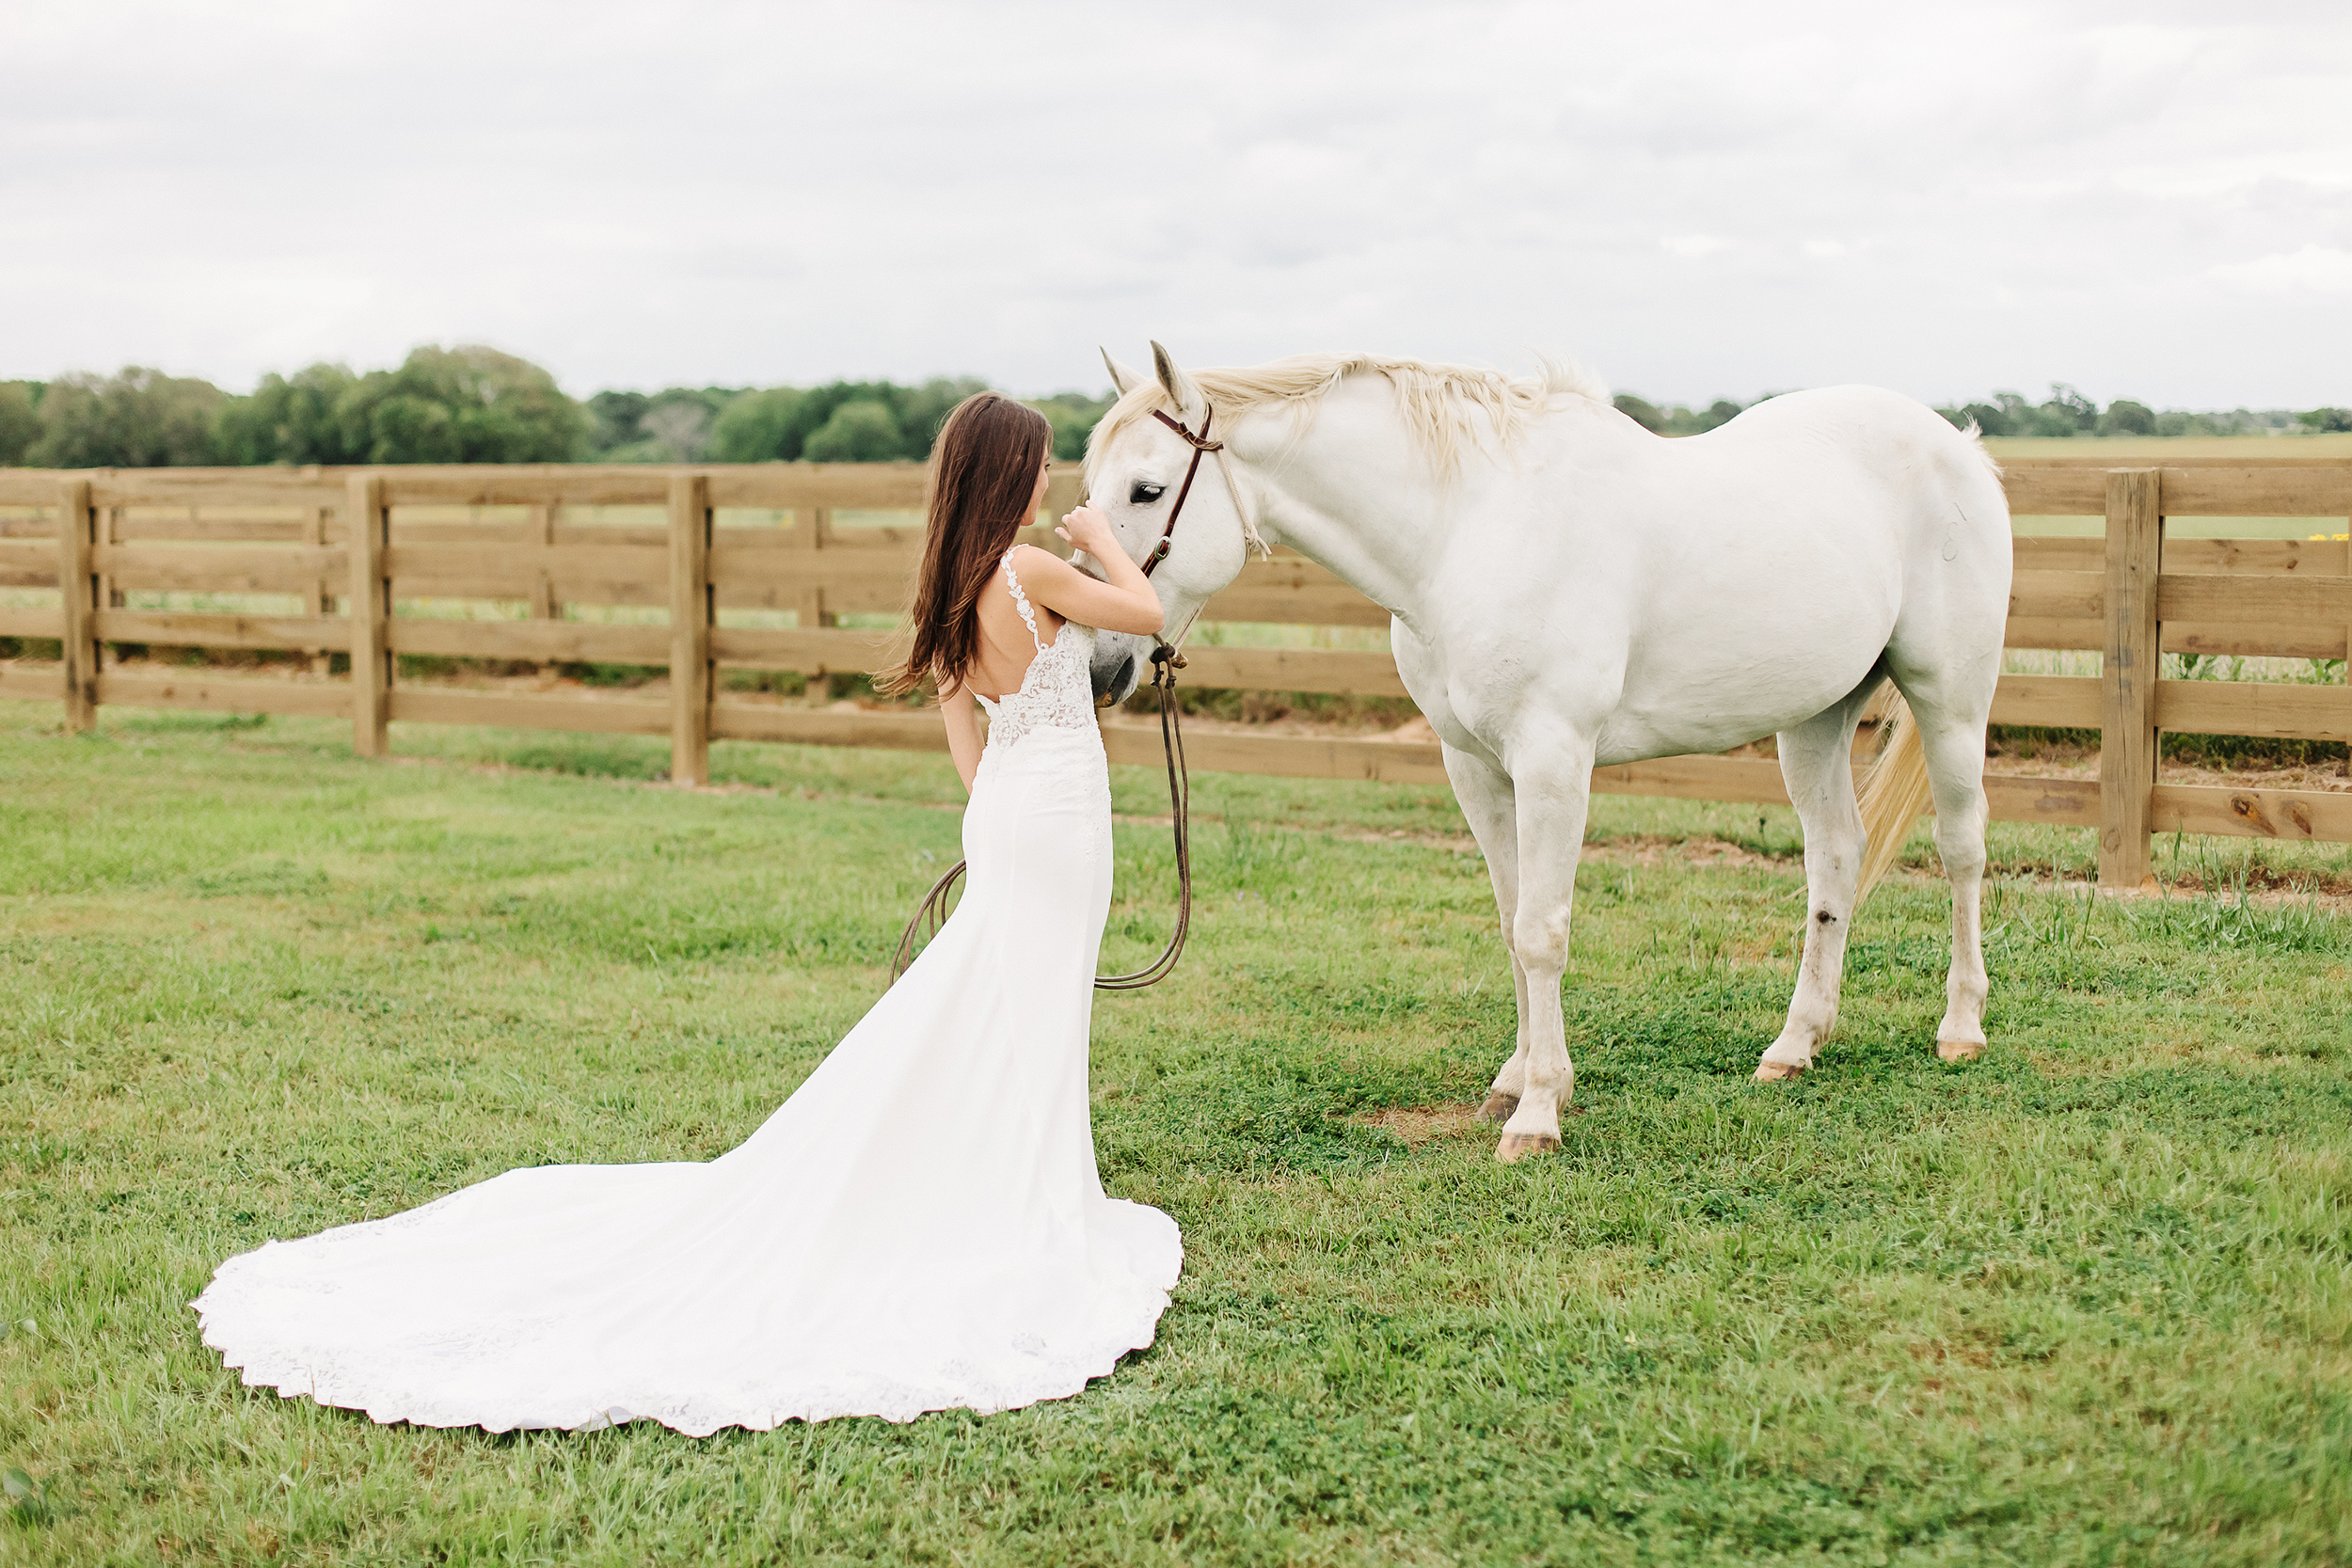 Bride with White Horse | Cassie Schott Photography